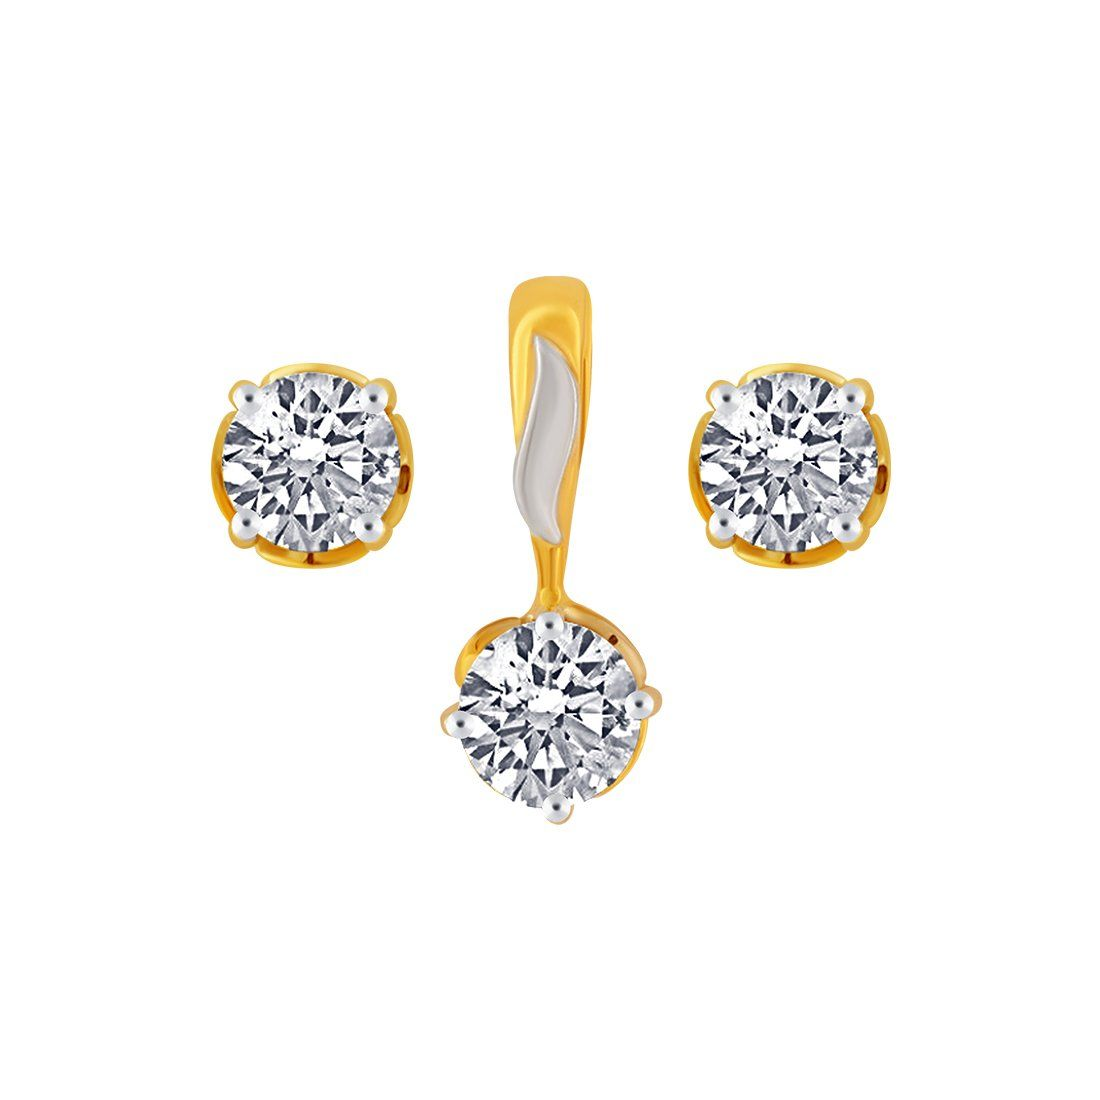 The Jewellery Set Is Made Of 10kt Yellow Gold The Product Is 16 5 Mm In Length And 7 Mm In Width Templ With Images Gold Jewelry Sets Yellow Gold Jewelry Gold Necklace Set